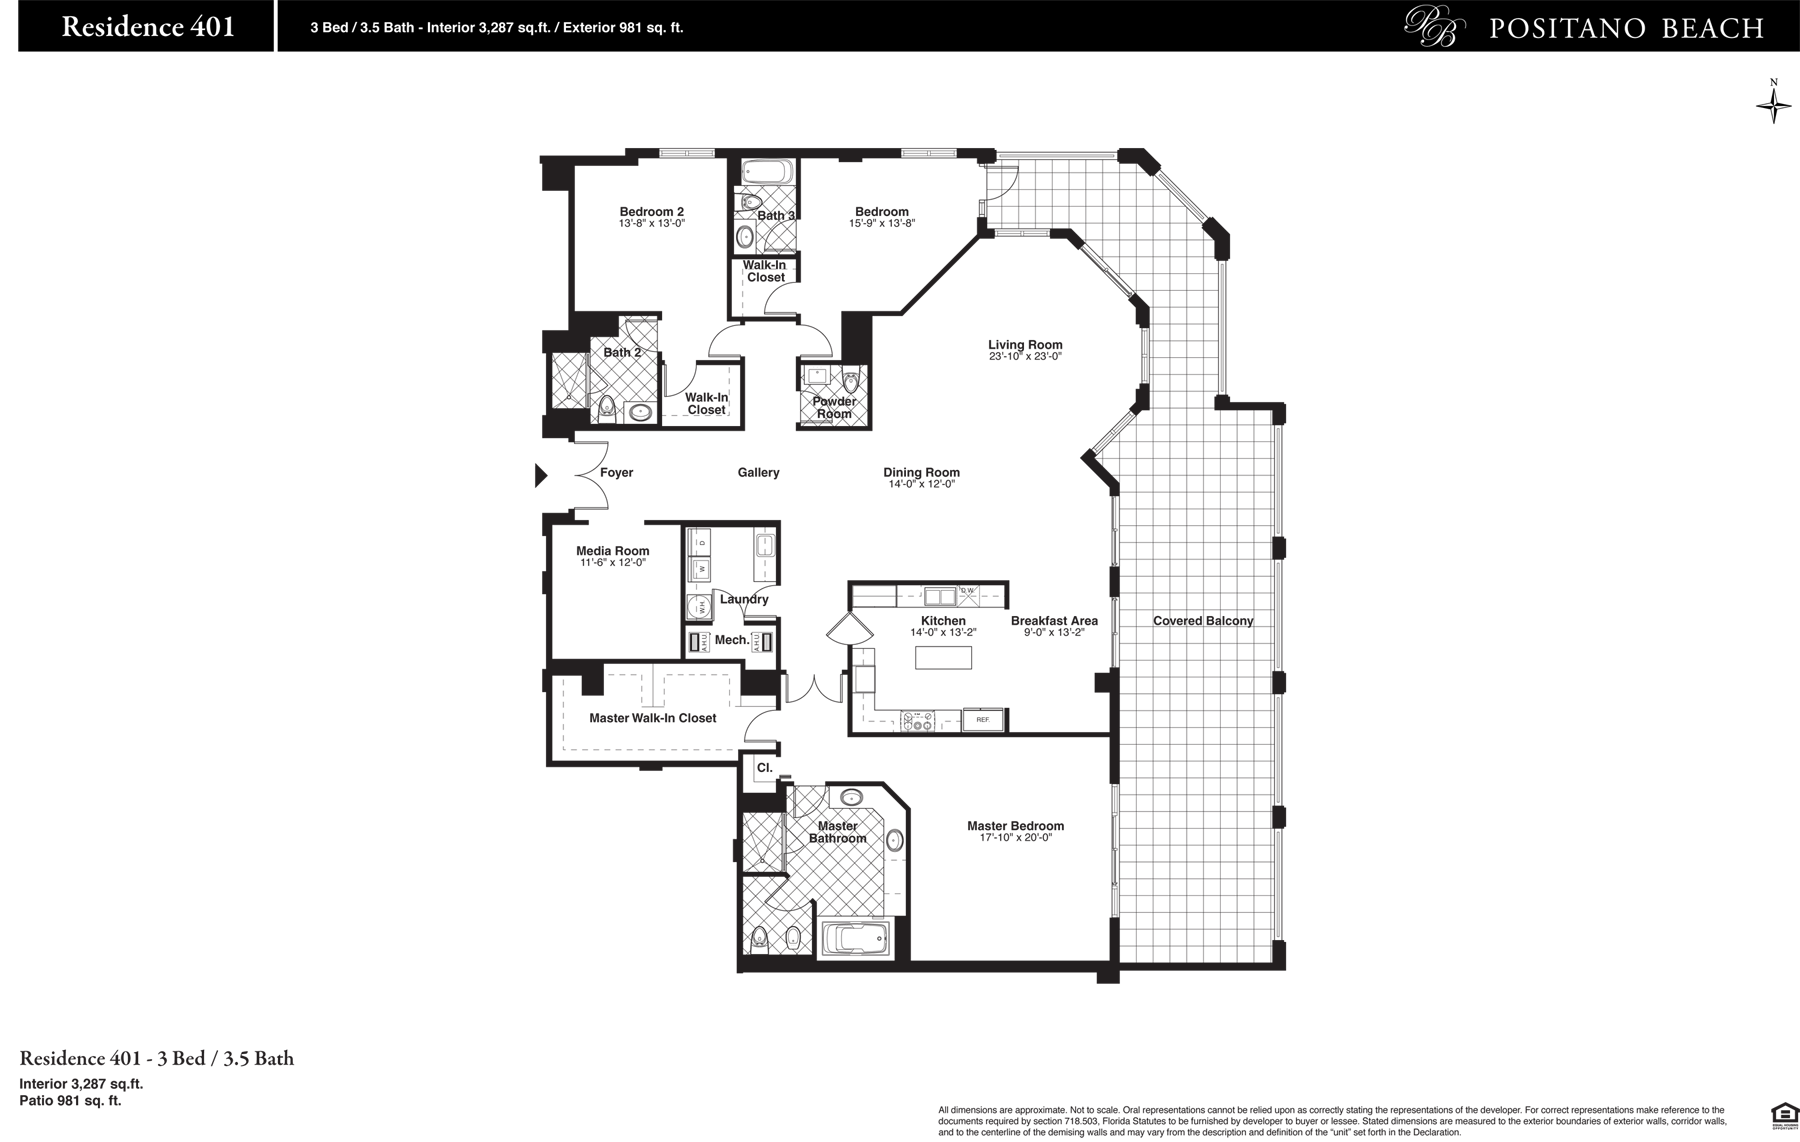 Positano Beach - Floorplan 2